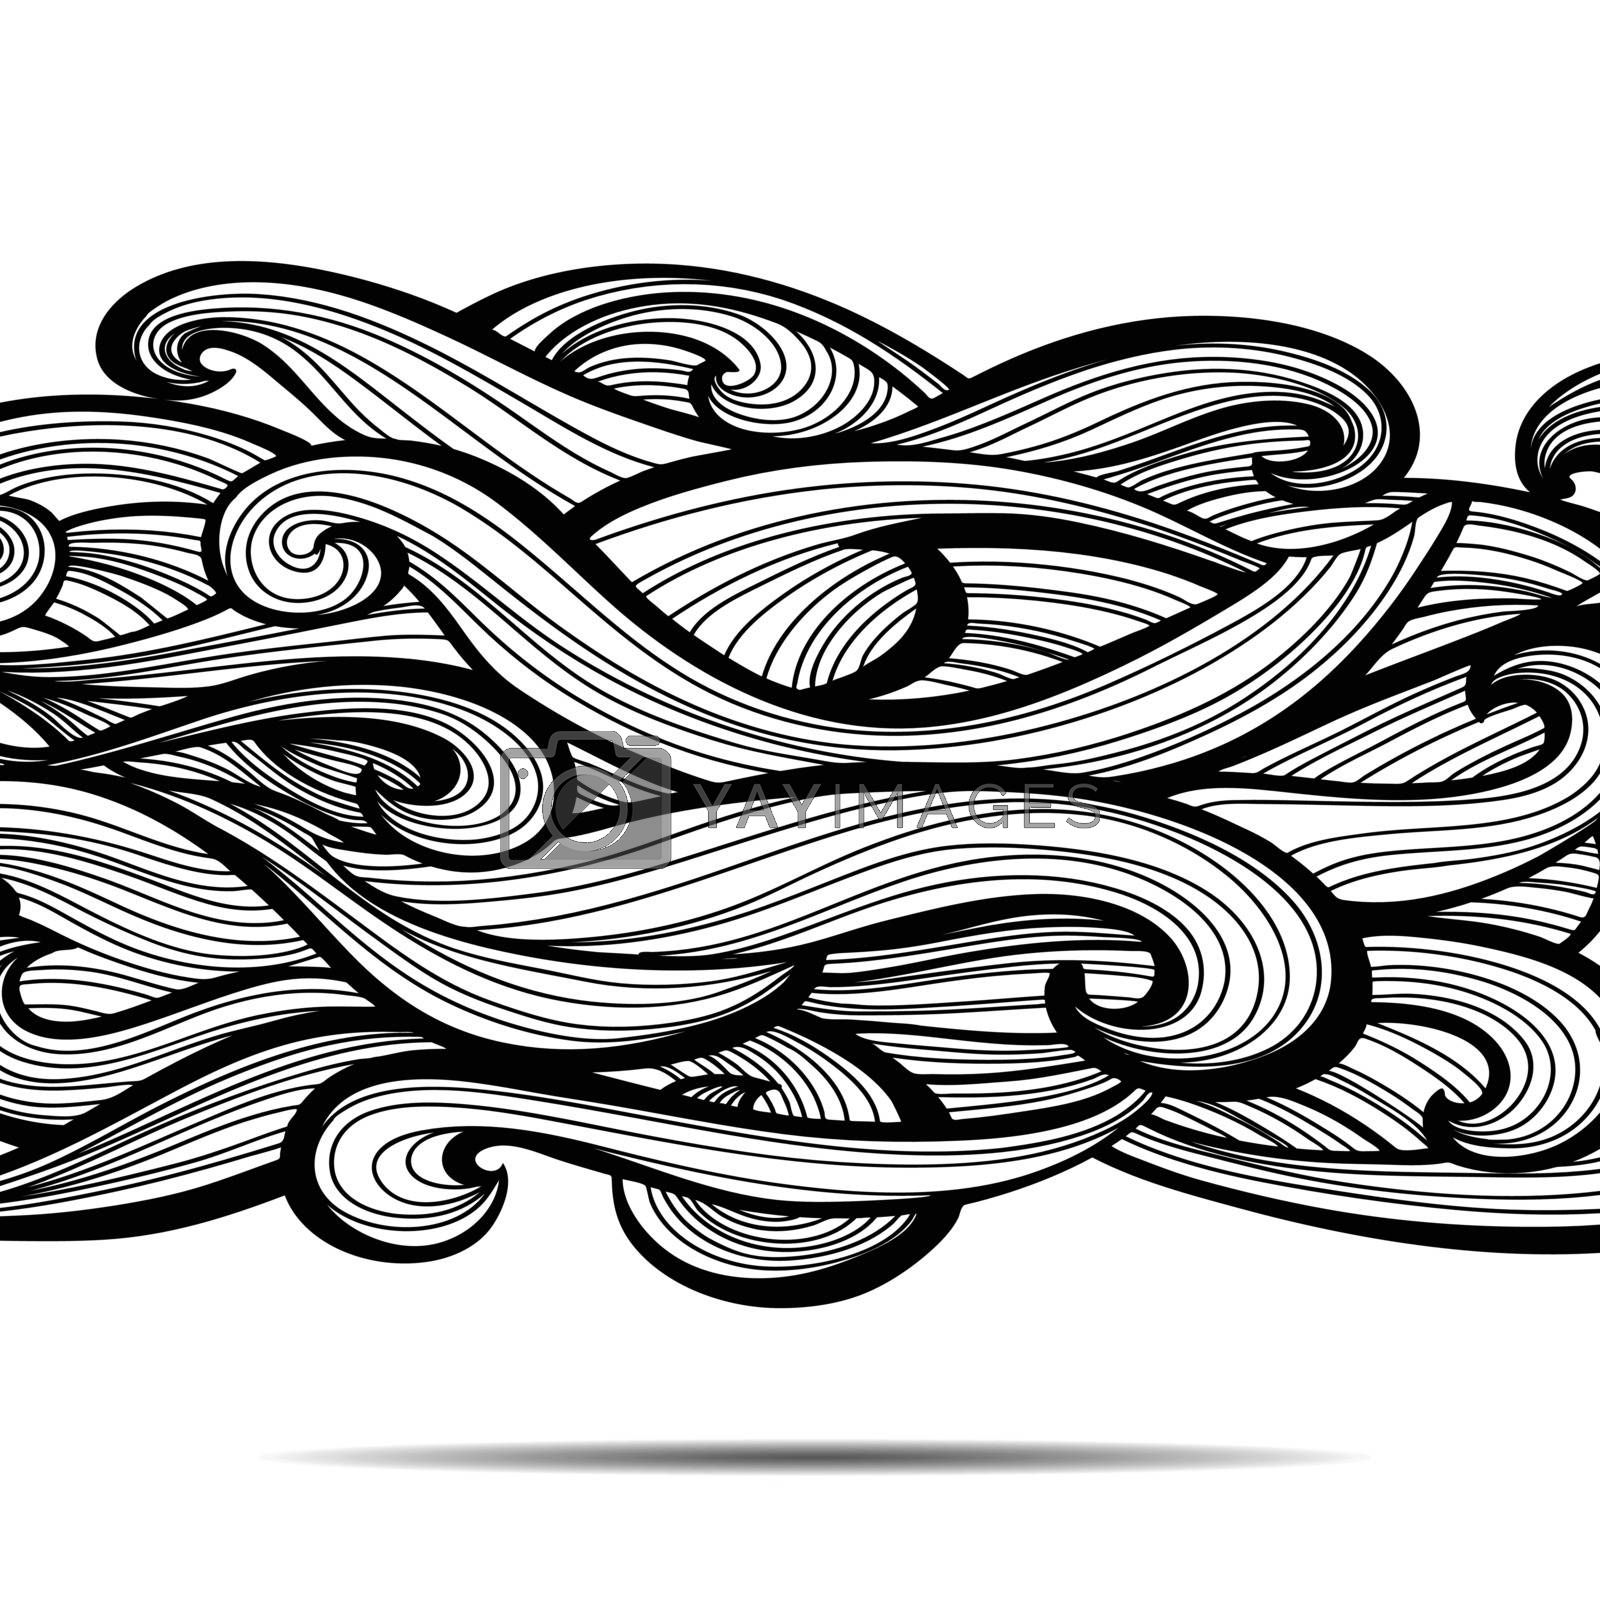 Curl abstract pattern with multicolored waves. Vector illustration. EPS